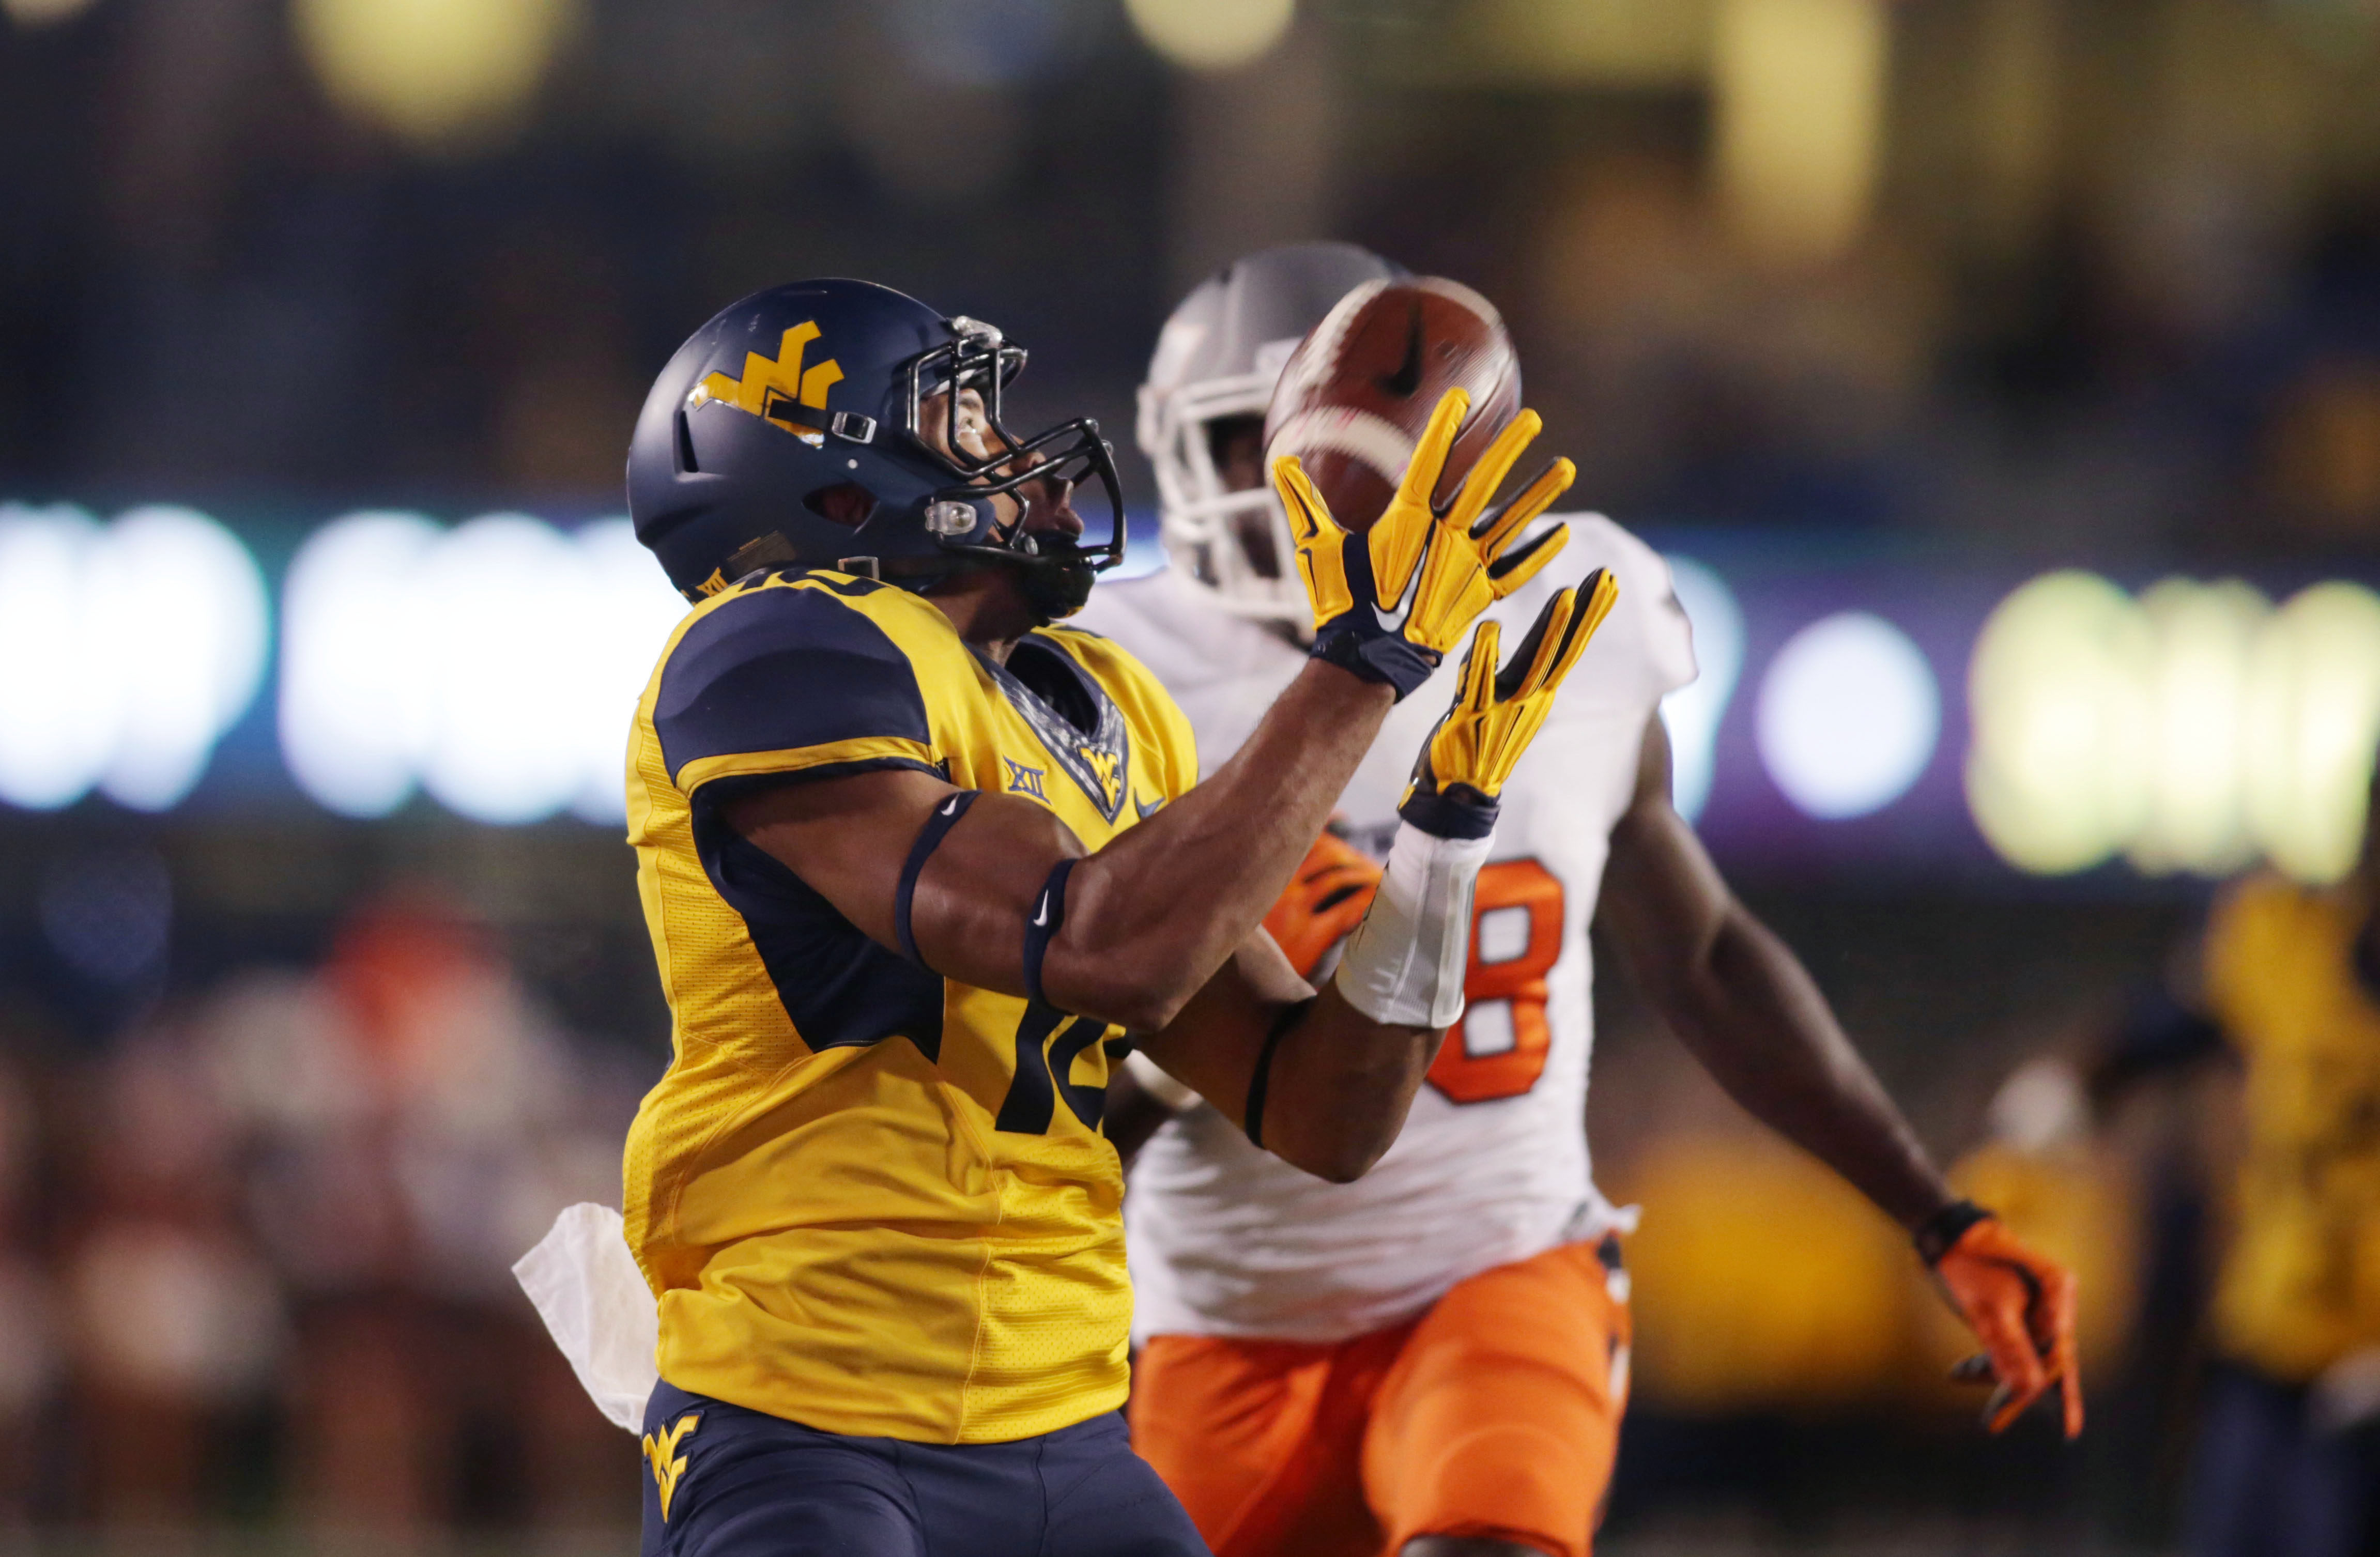 West Virginia cornerback Terrell Chestnut (16) intercepts the football after beating Oklahoma State wide receiver James Washington (28) to the pass during the first half of an NCAA college football game, Saturday, Oct. 10, 2015, in Morgantown, W.Va. (AP P